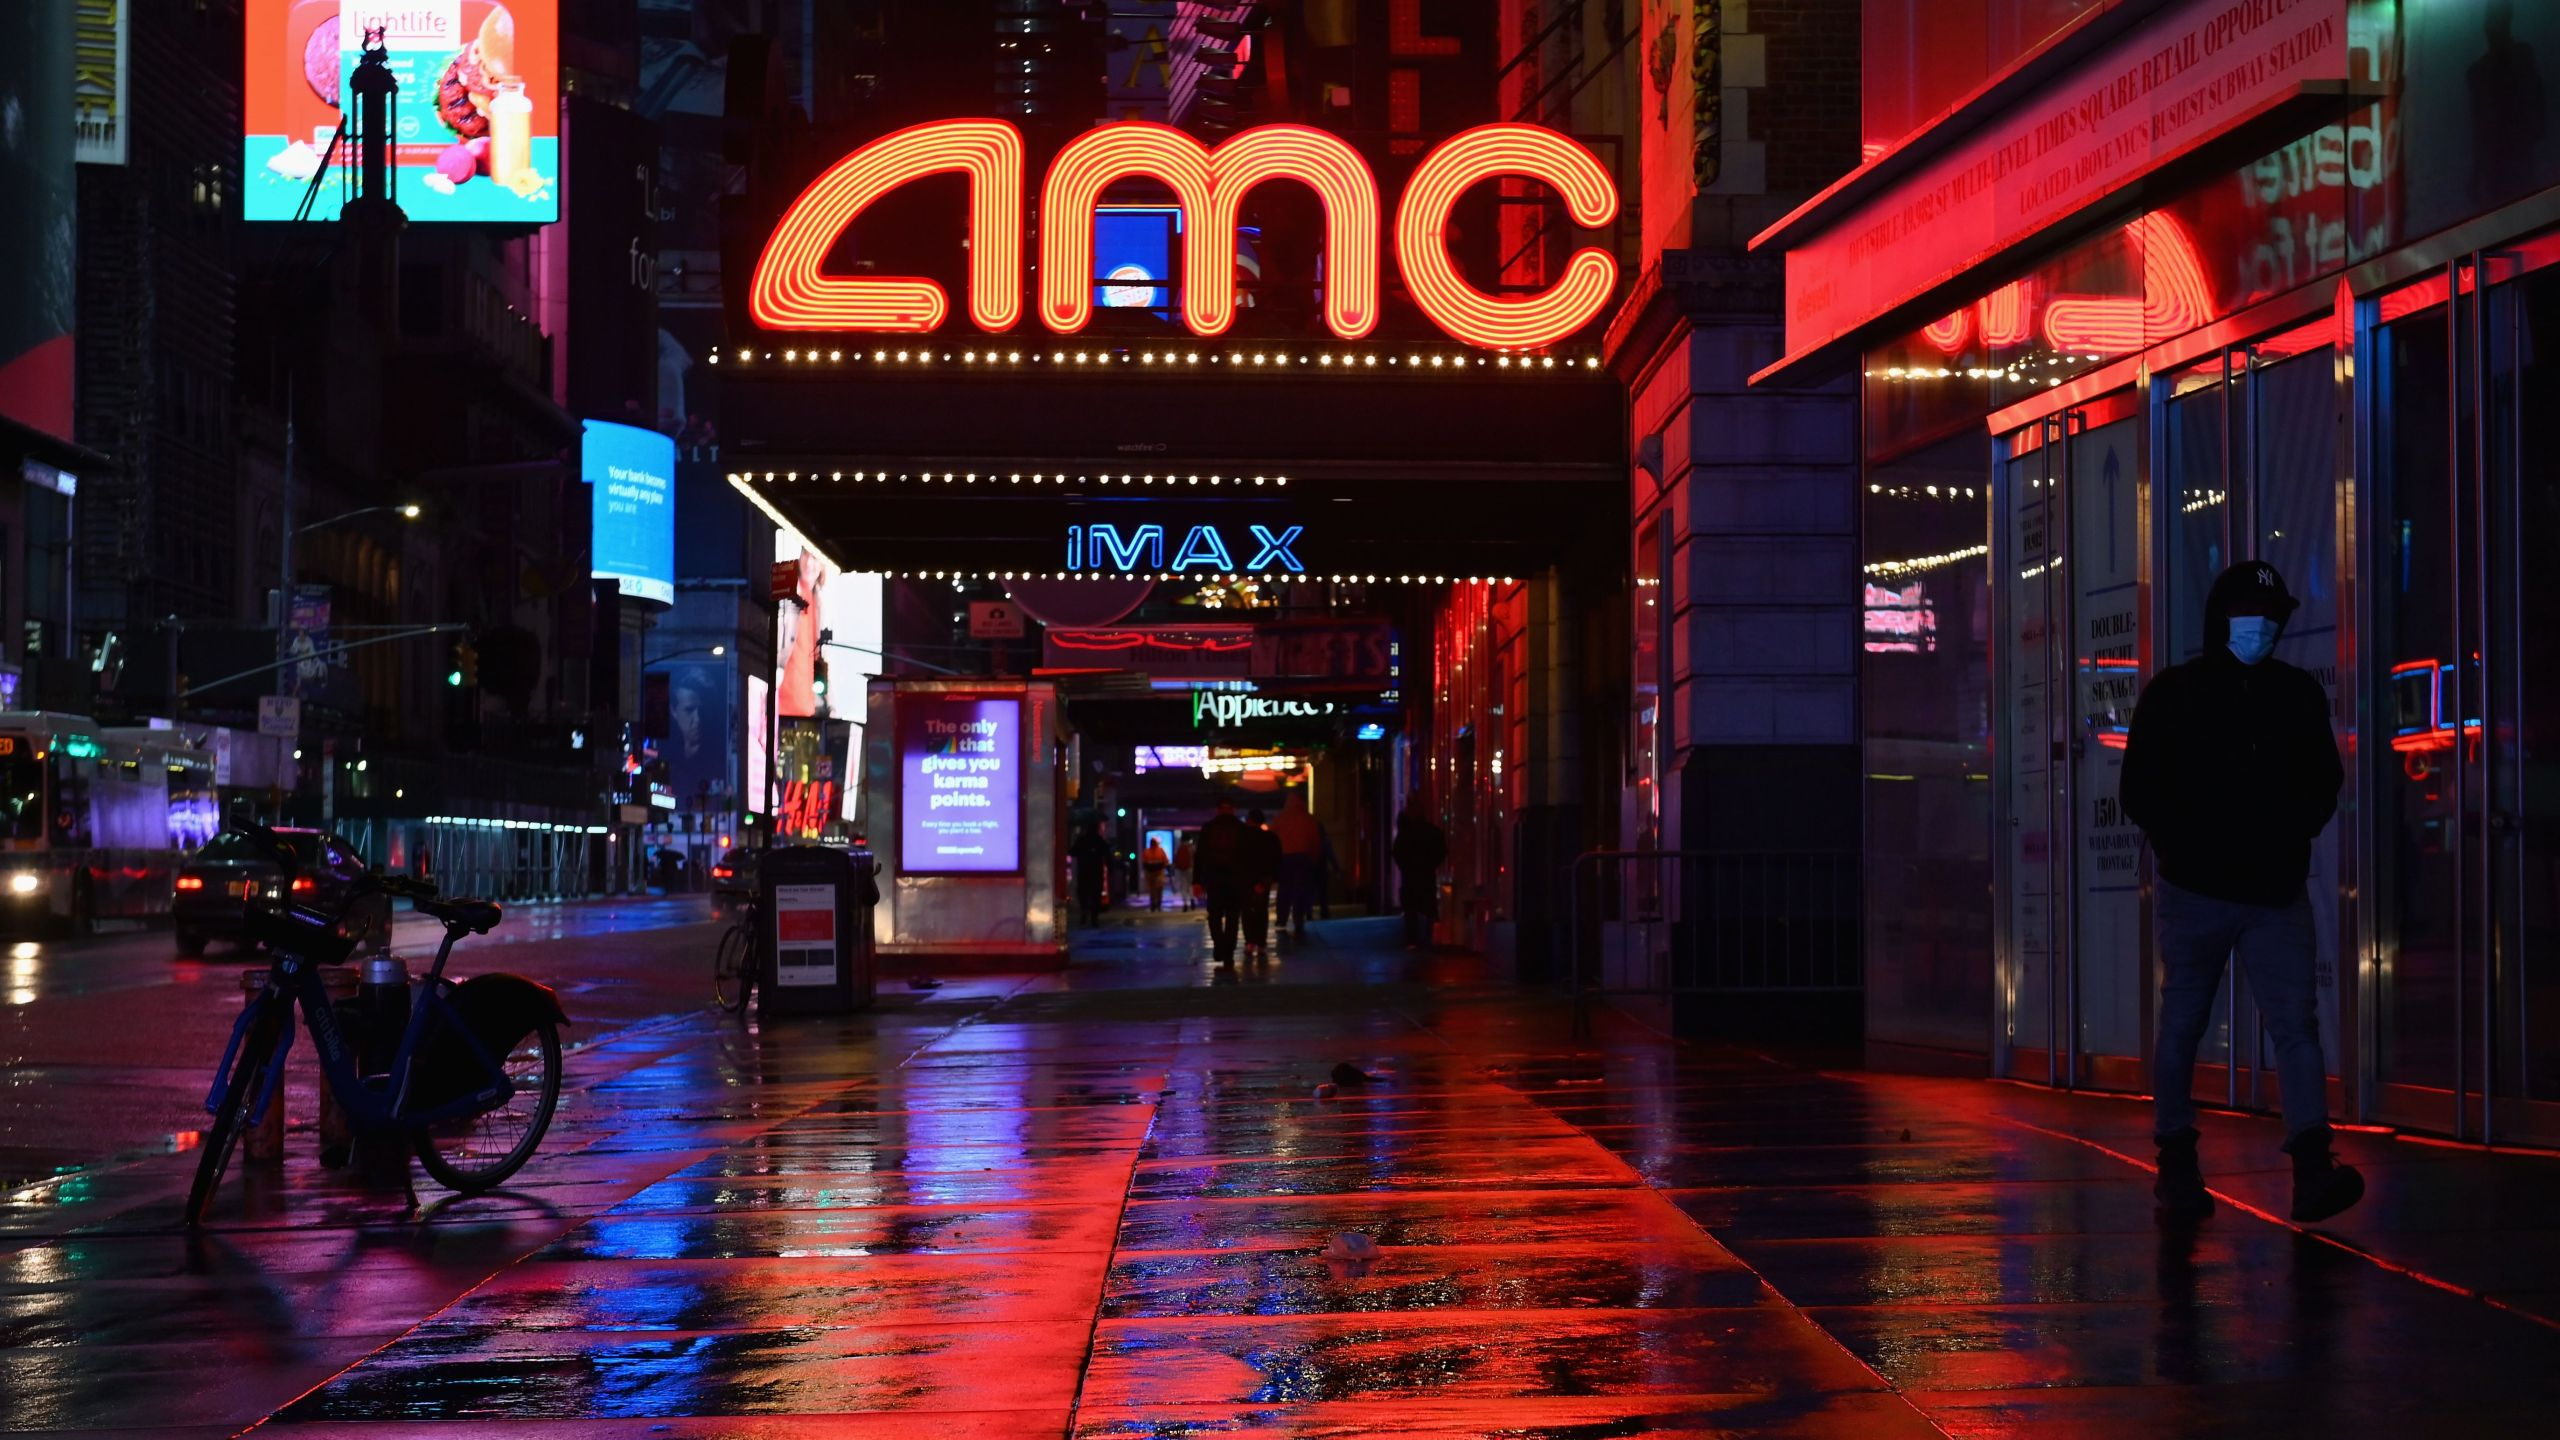 View of a closed AMC movie theater near Time Square on Oct. 12, 2020 in New York City.(ANGELA WEISS/AFP via Getty Images)